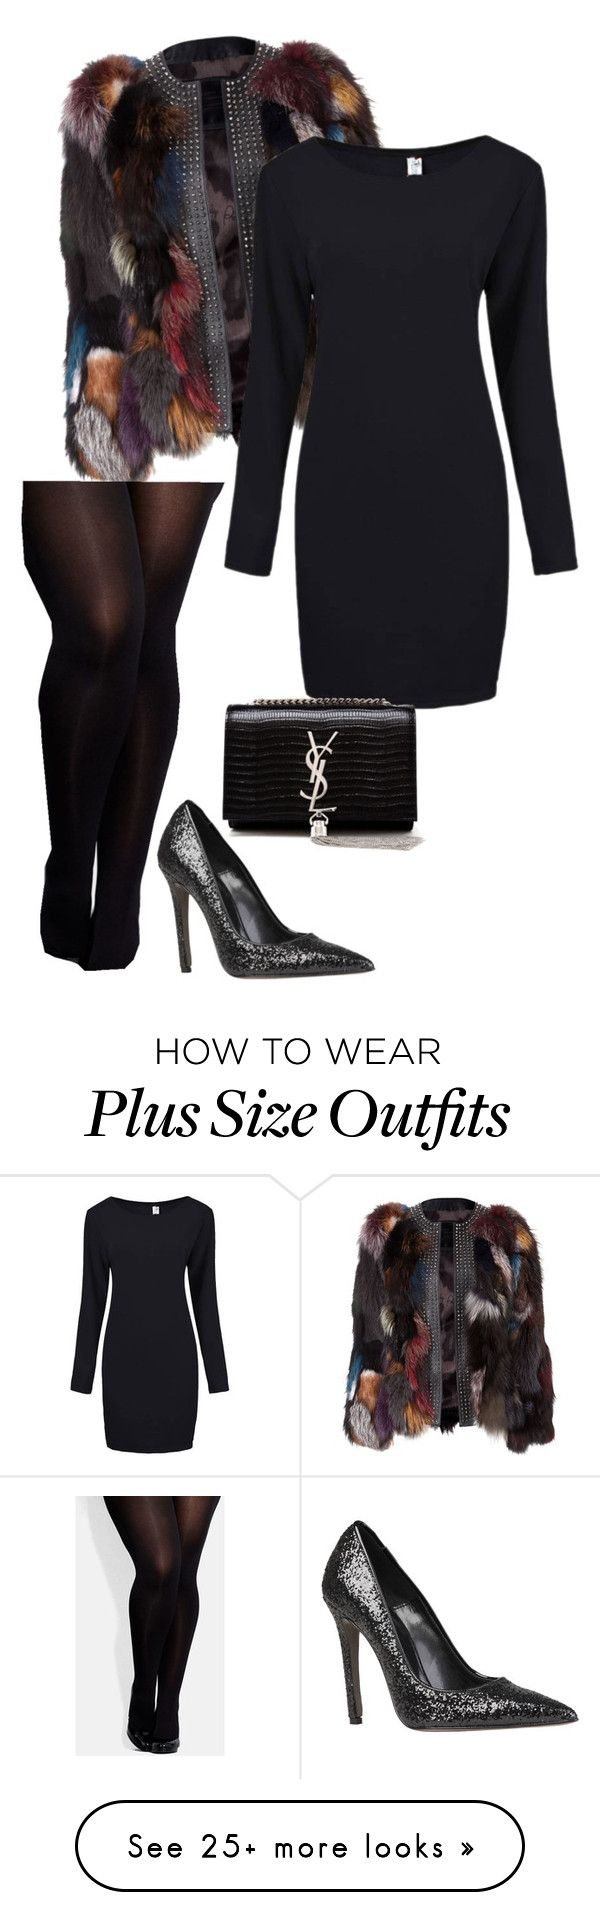 """Plus size Glam (2015 holiday collection)"" by imadivaaa on Polyvore featuring Versace, City Chic and Yves Saint Laurent"